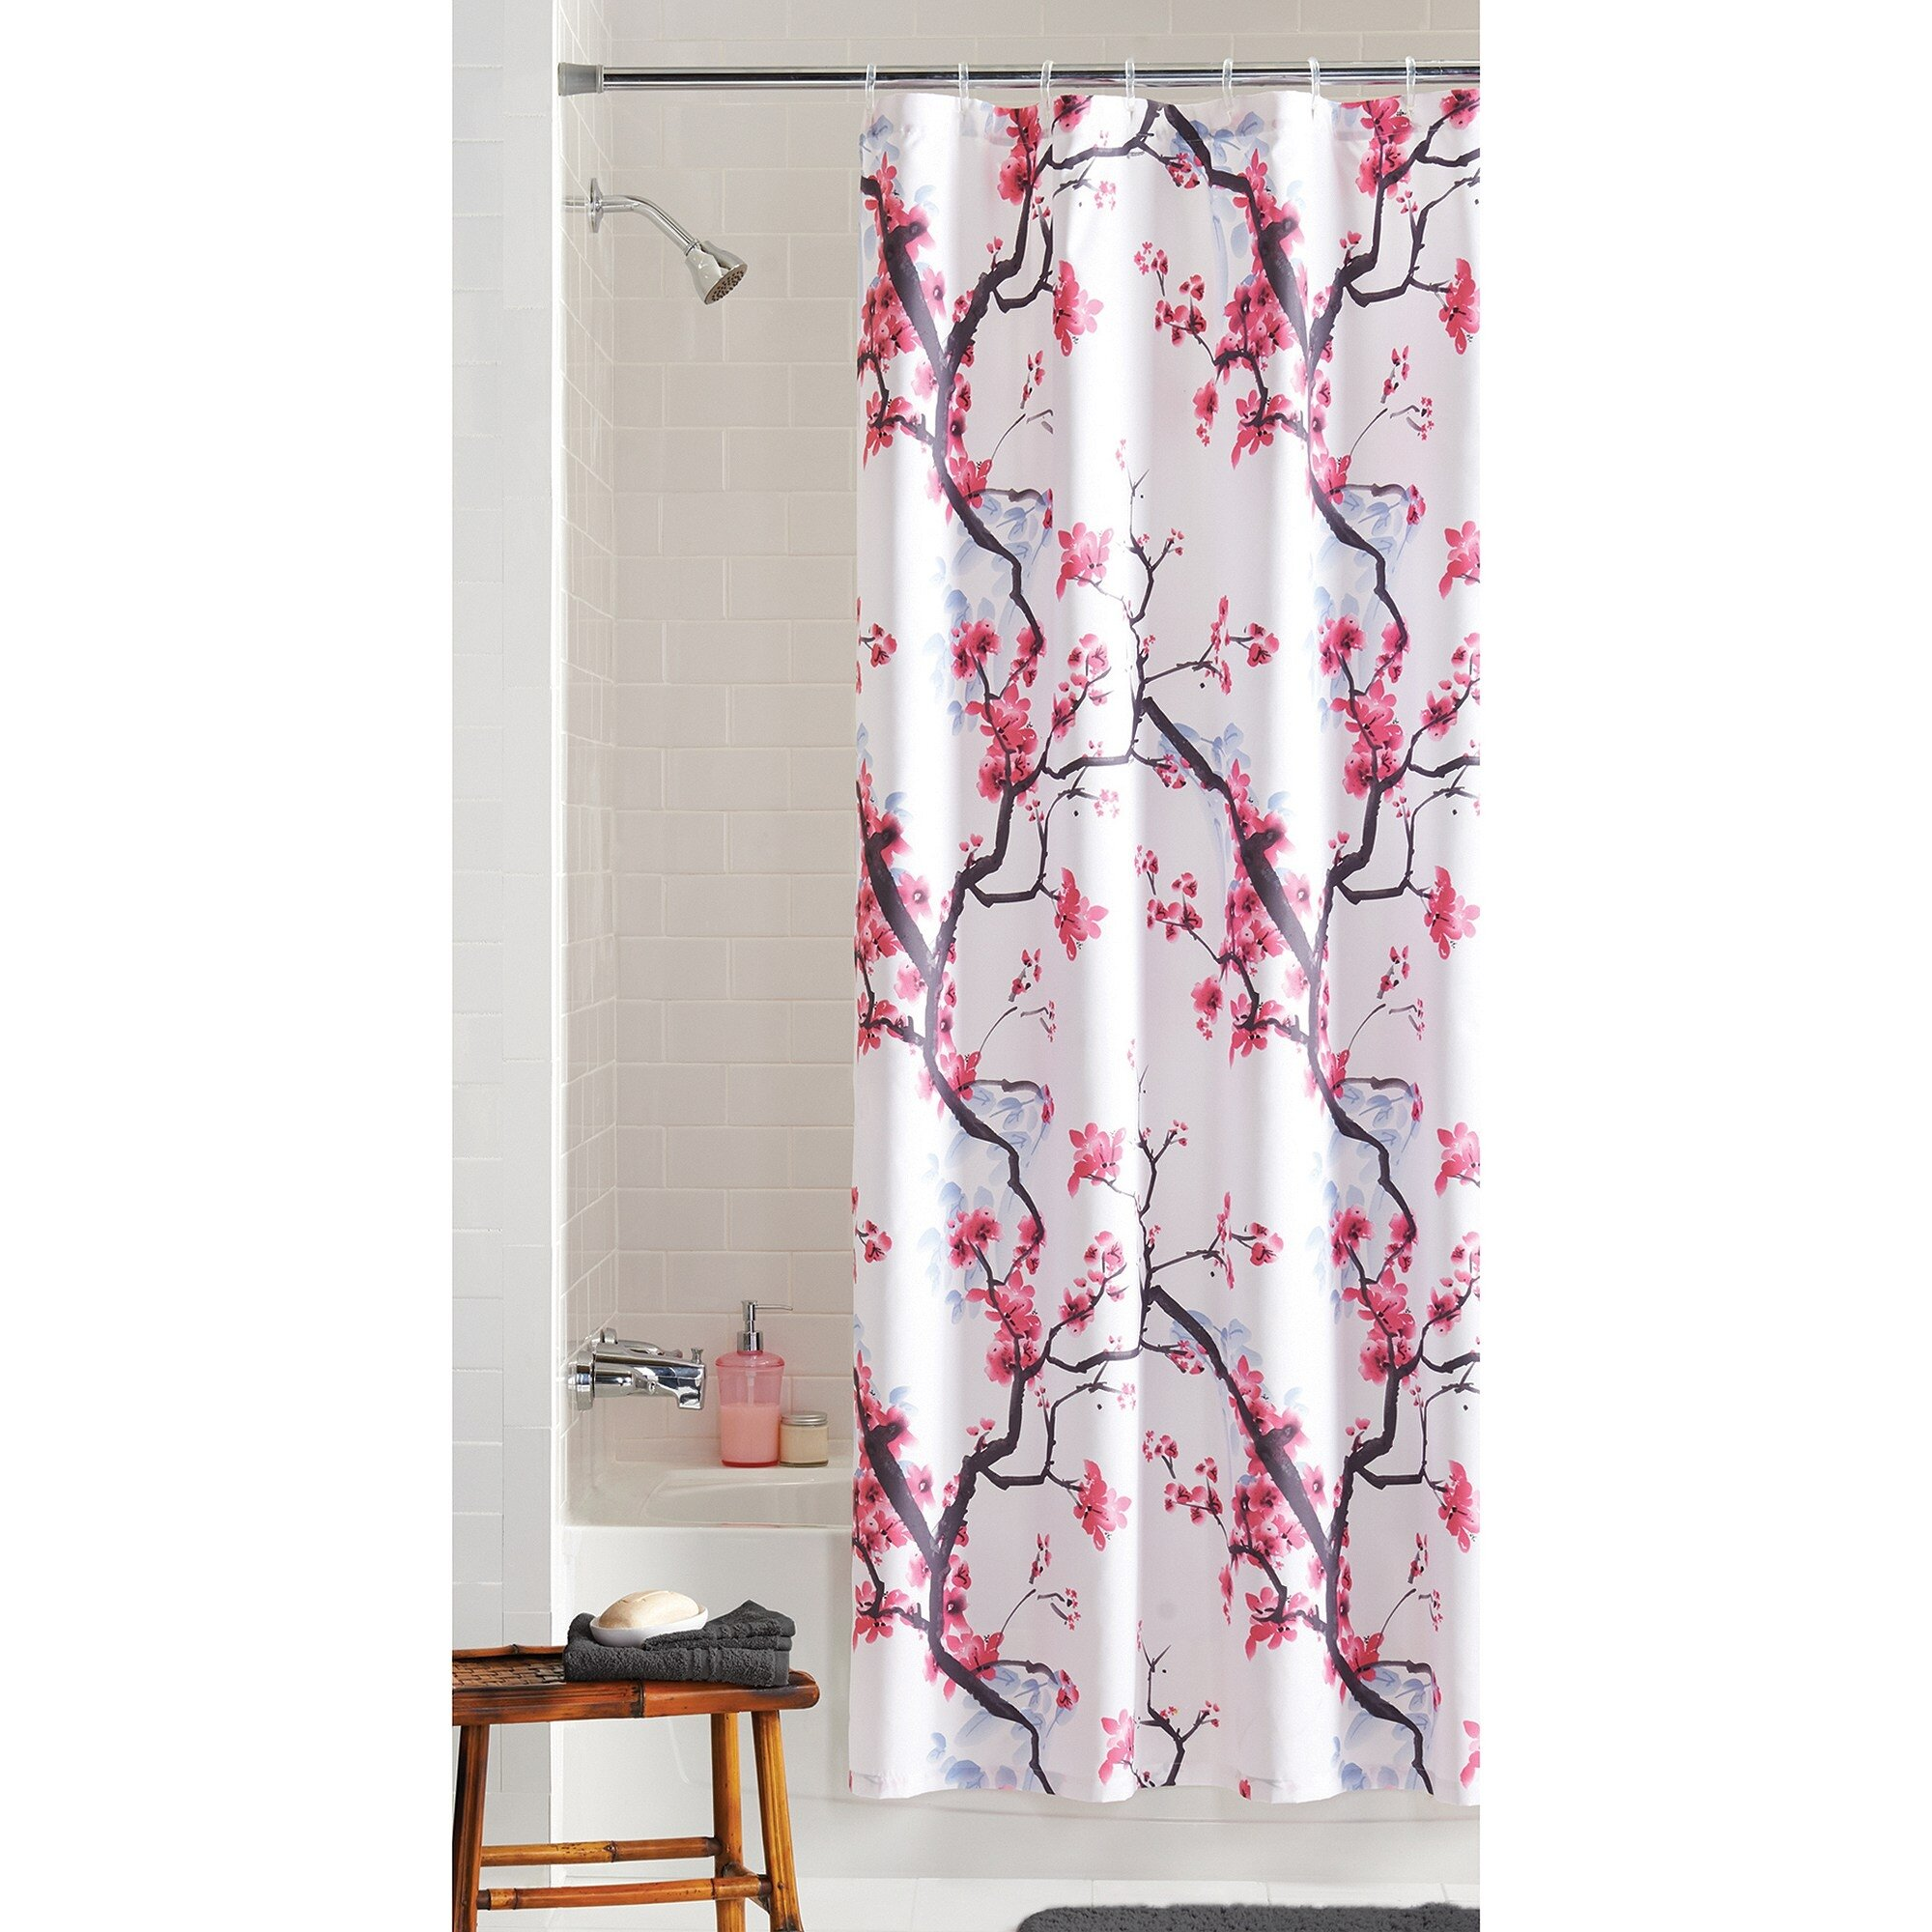 Cheap Fabric Shower Curtain | Walmart Shower Curtain | Bathroom Curtains Walmart